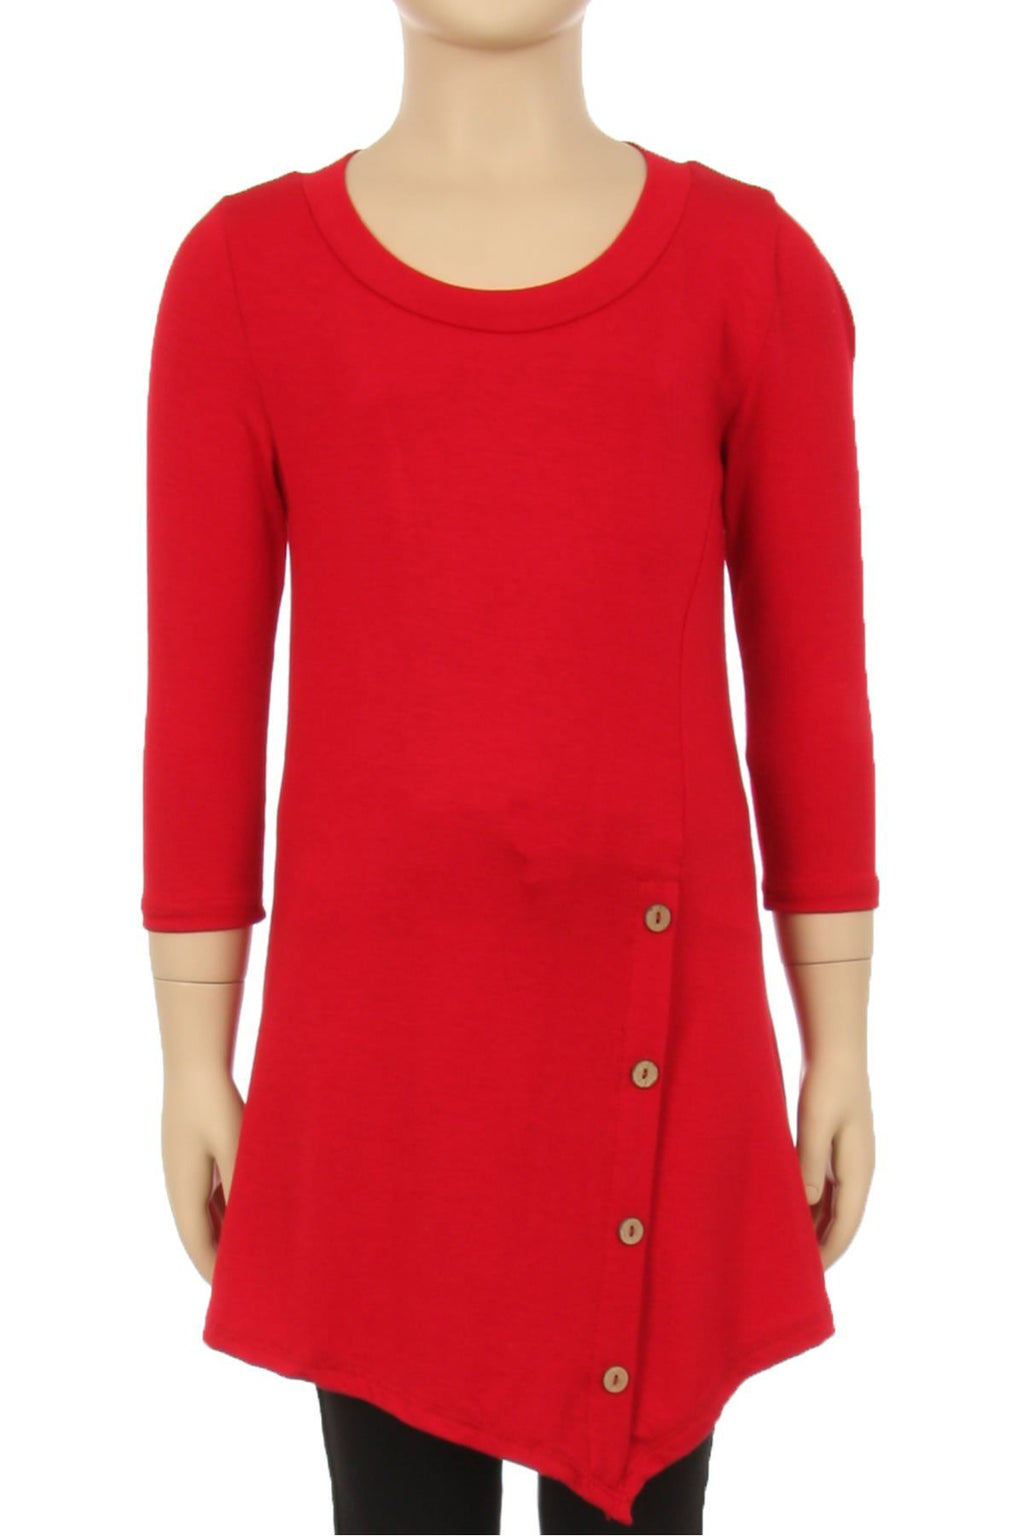 Girls Solid Red Dress Asymmetric 3/4 Sleeve Tunic Top - MomMe and More Matching Mommy and Me Clothing